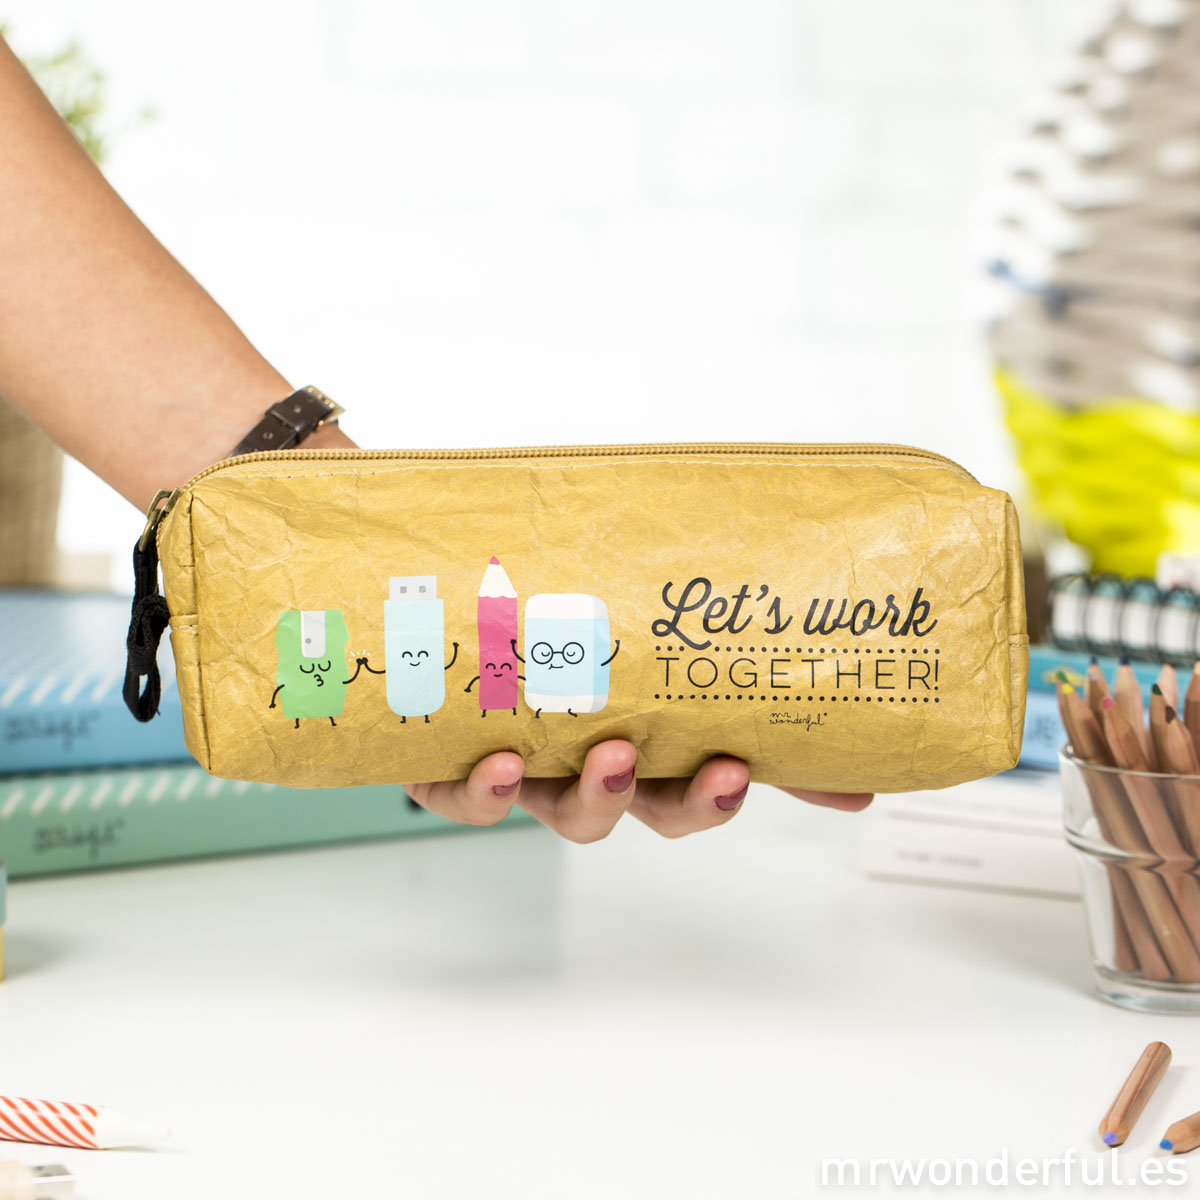 mrwonderful_ESTUCHE-02_pencil-case_lets-work-toghether-34